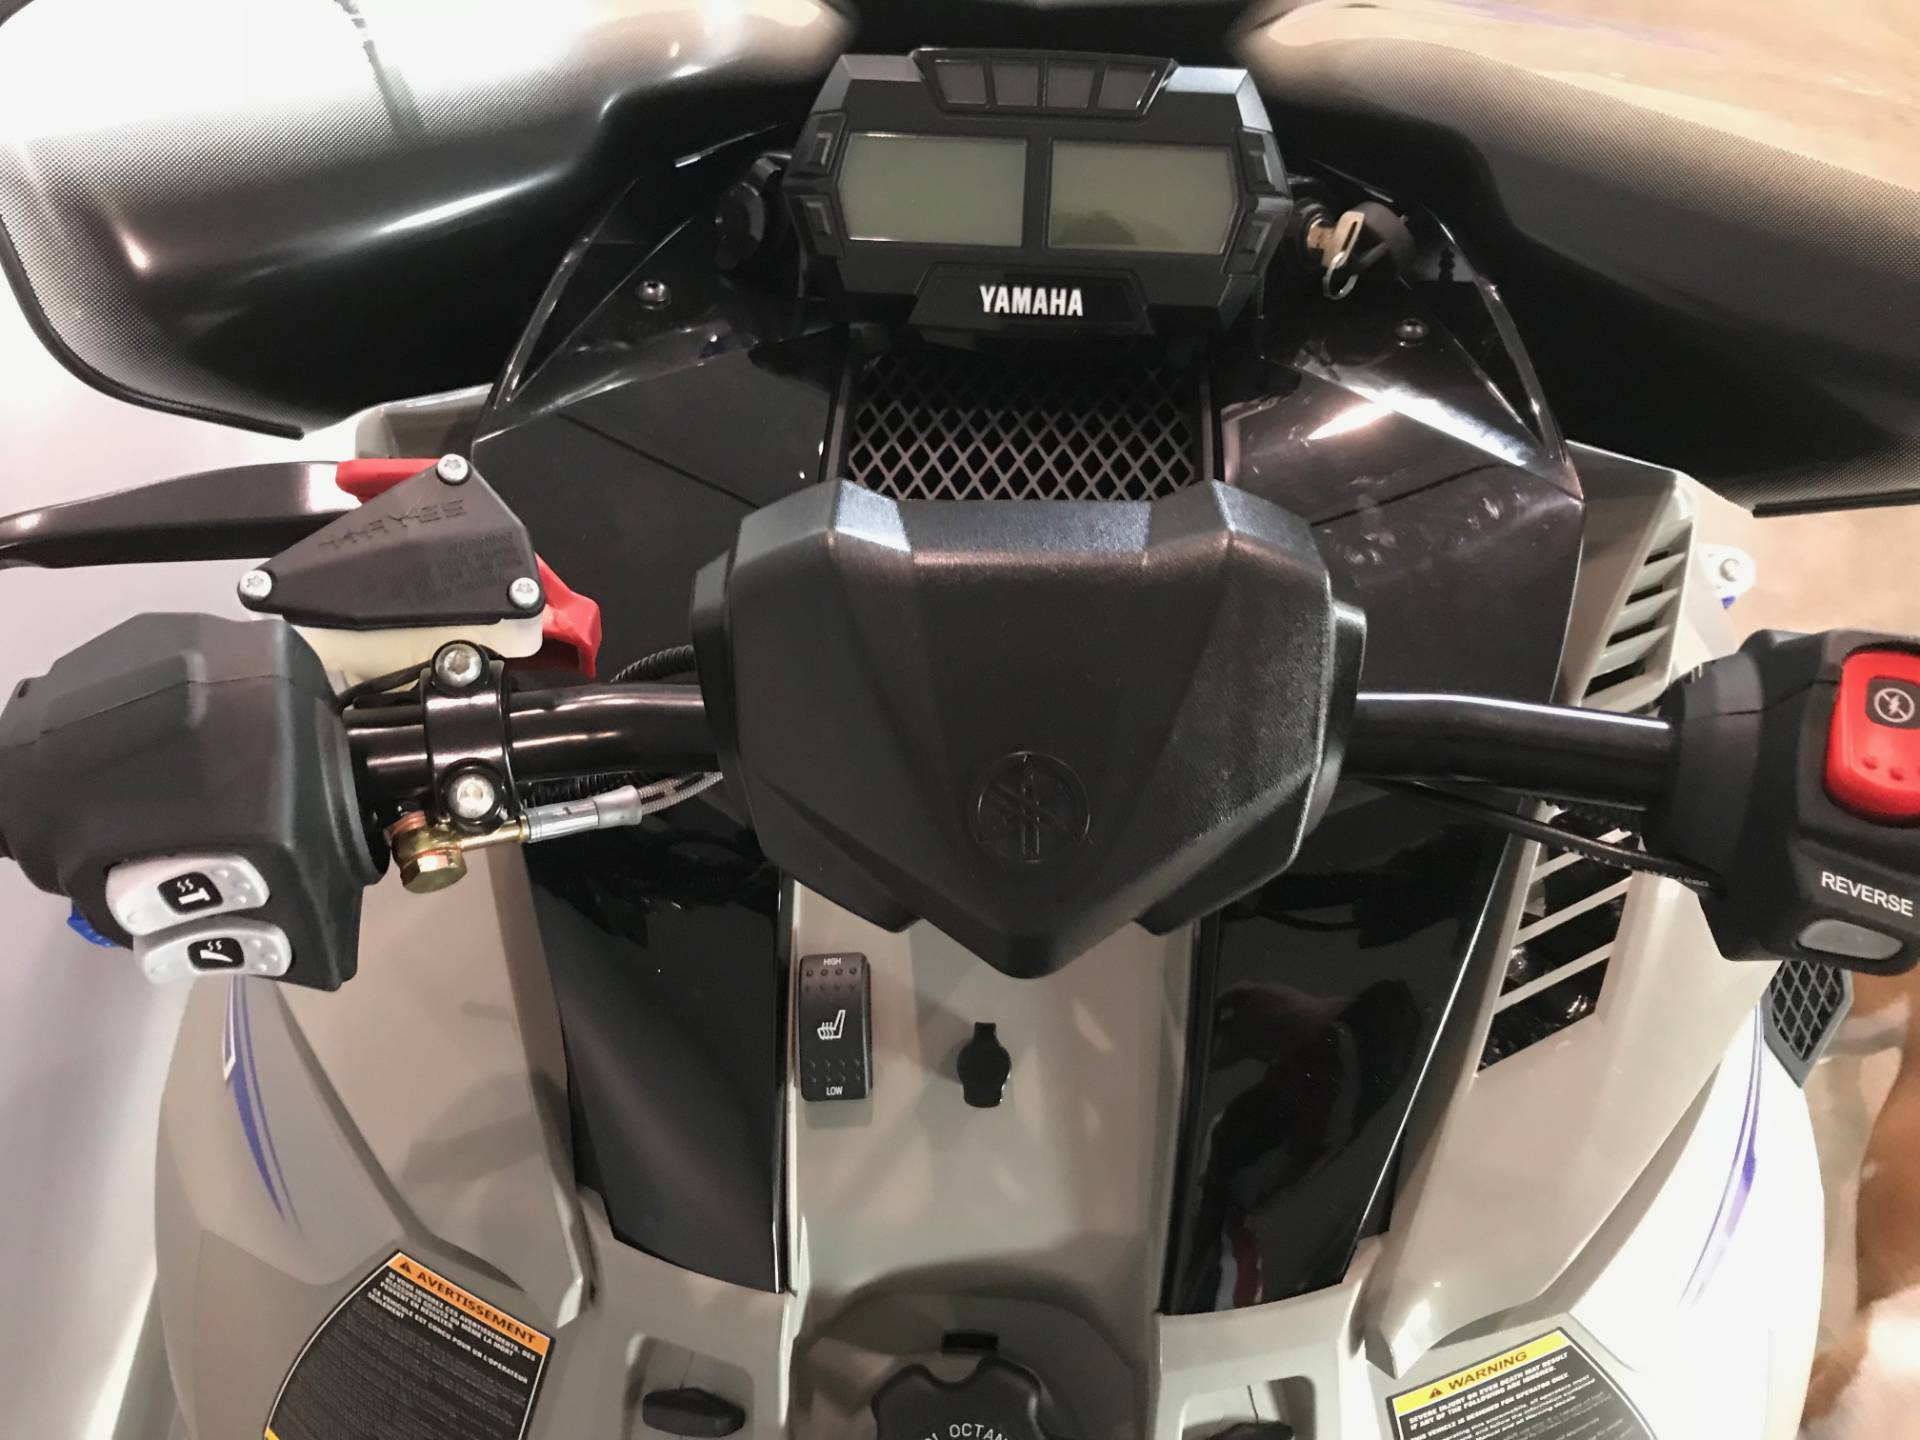 2018 Yamaha Sidewinder S-TX DX 137 in Hancock, Michigan - Photo 3